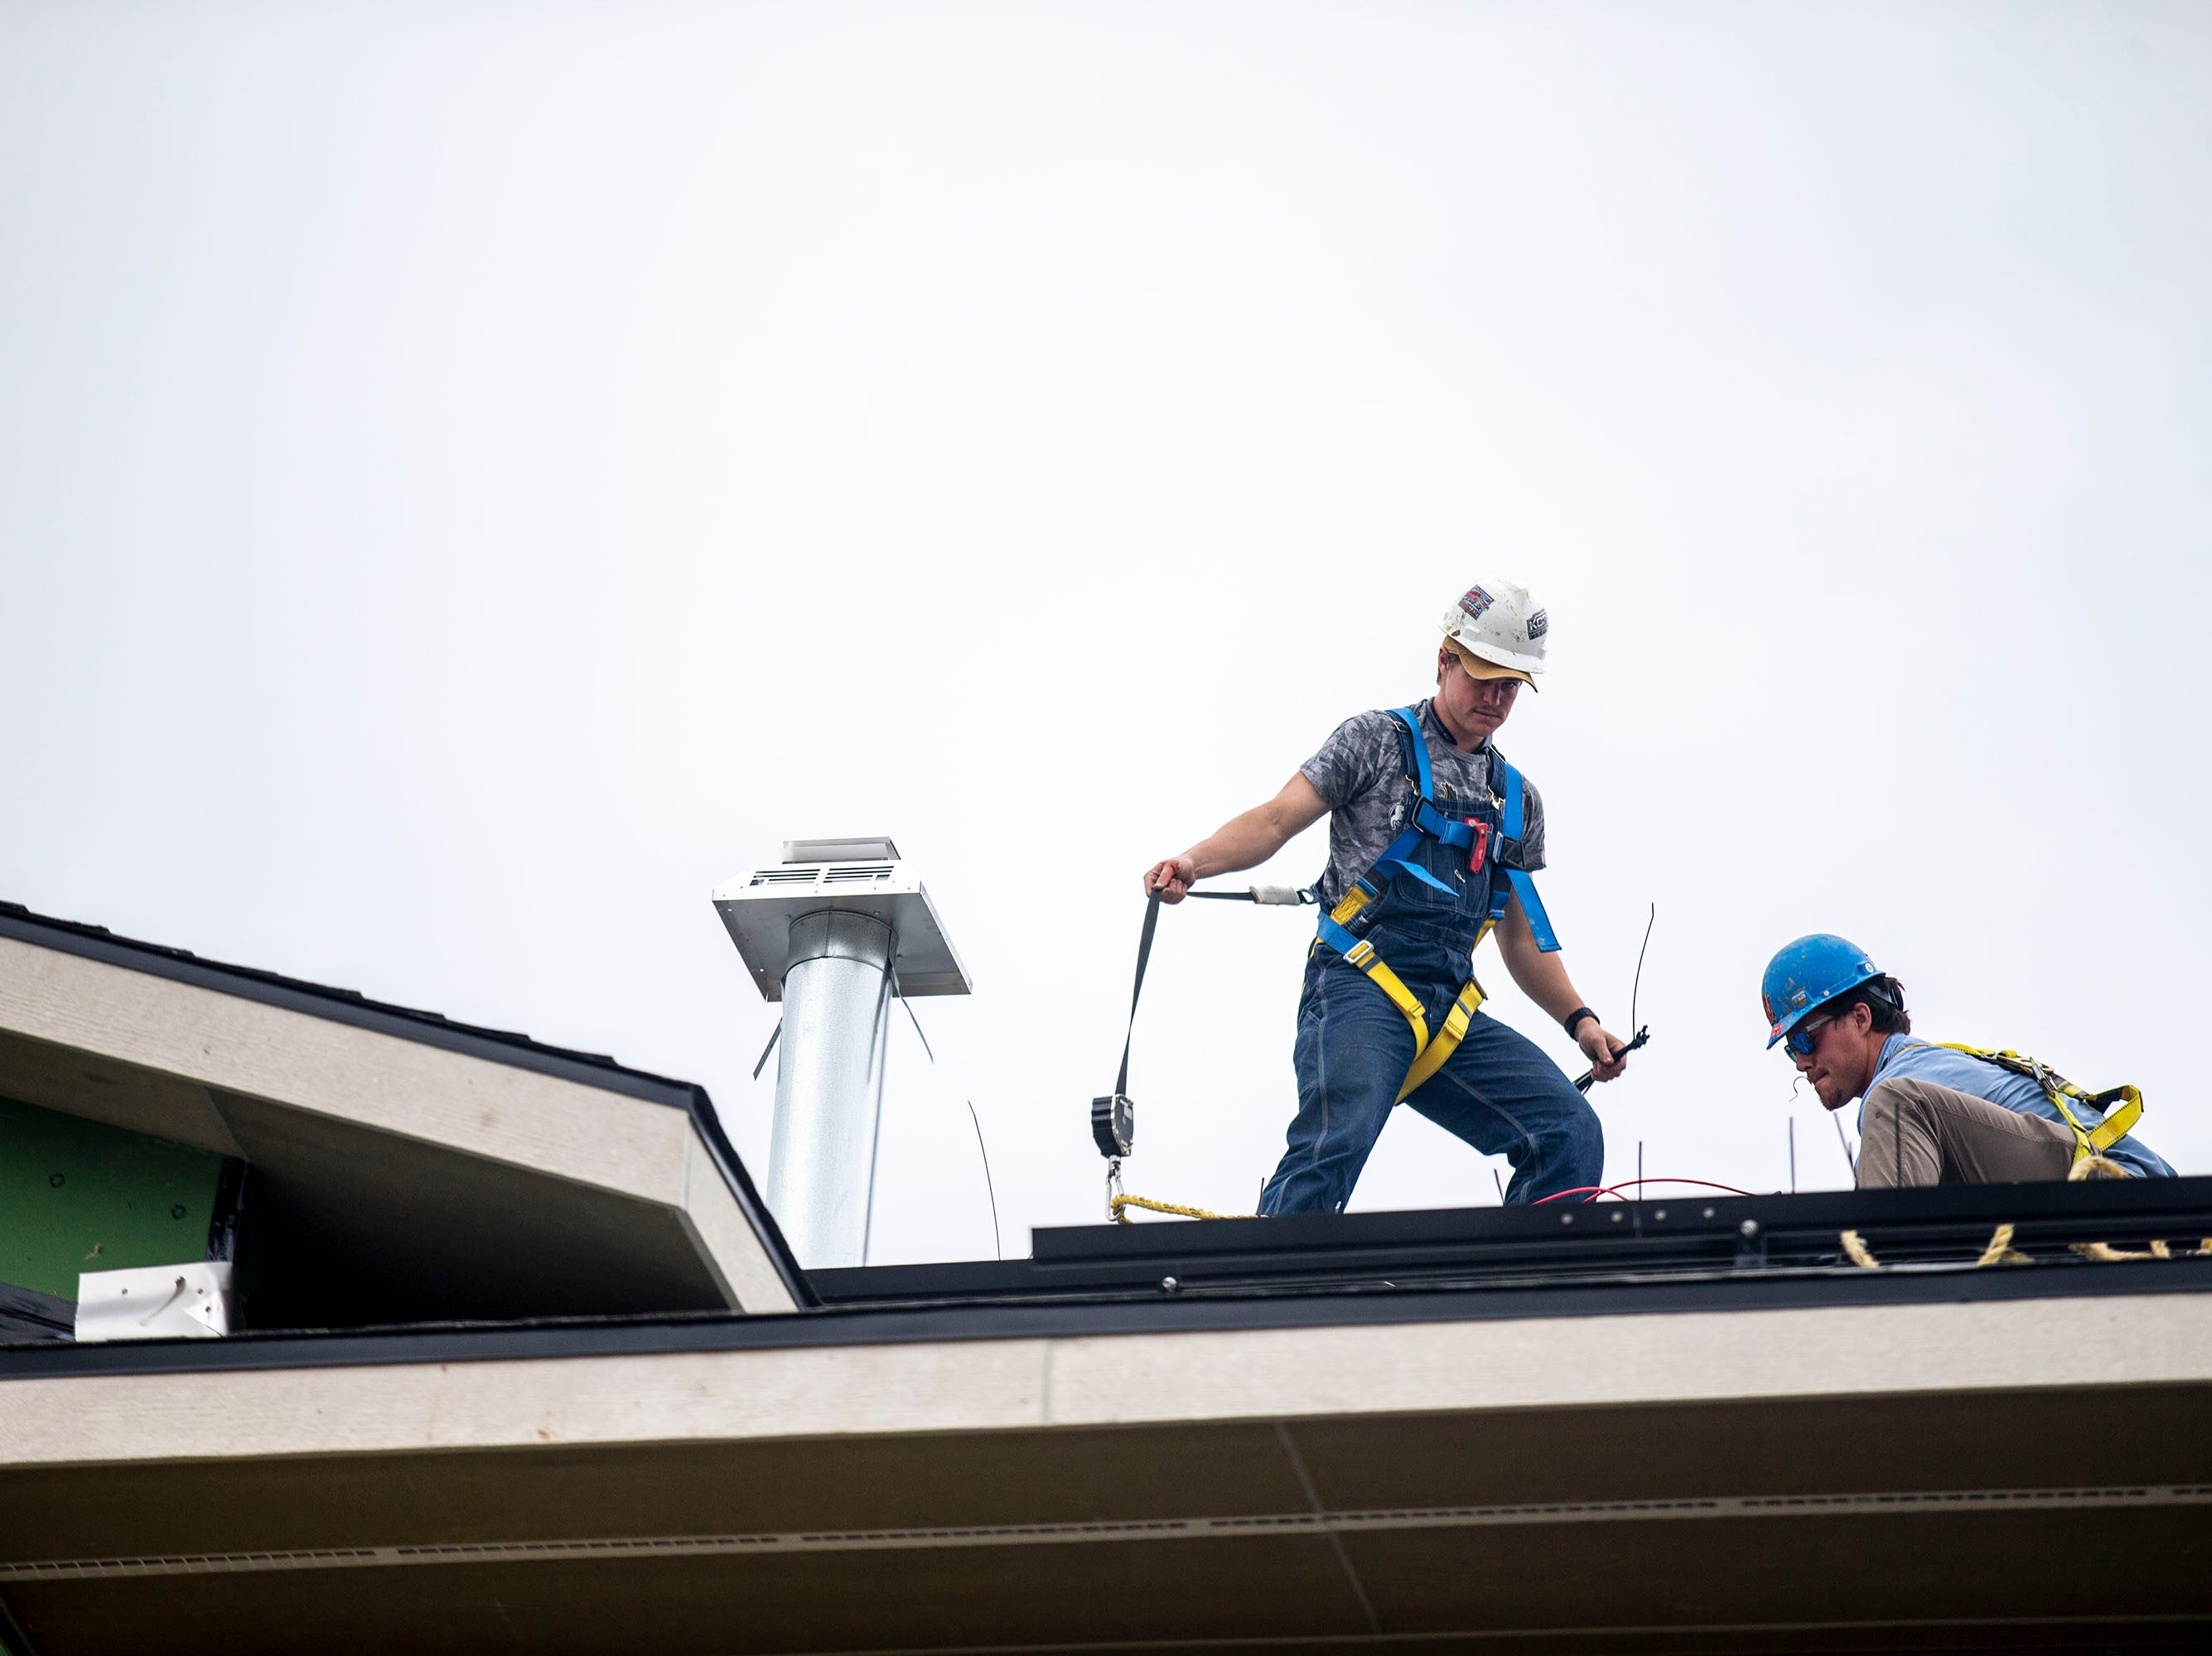 Nate Flynn and Jeremy Snead, working for 1 Source Solar, install a set of solar panels on the roof of a home under construction on Tuesday, April 9, 2019, in Waukee.